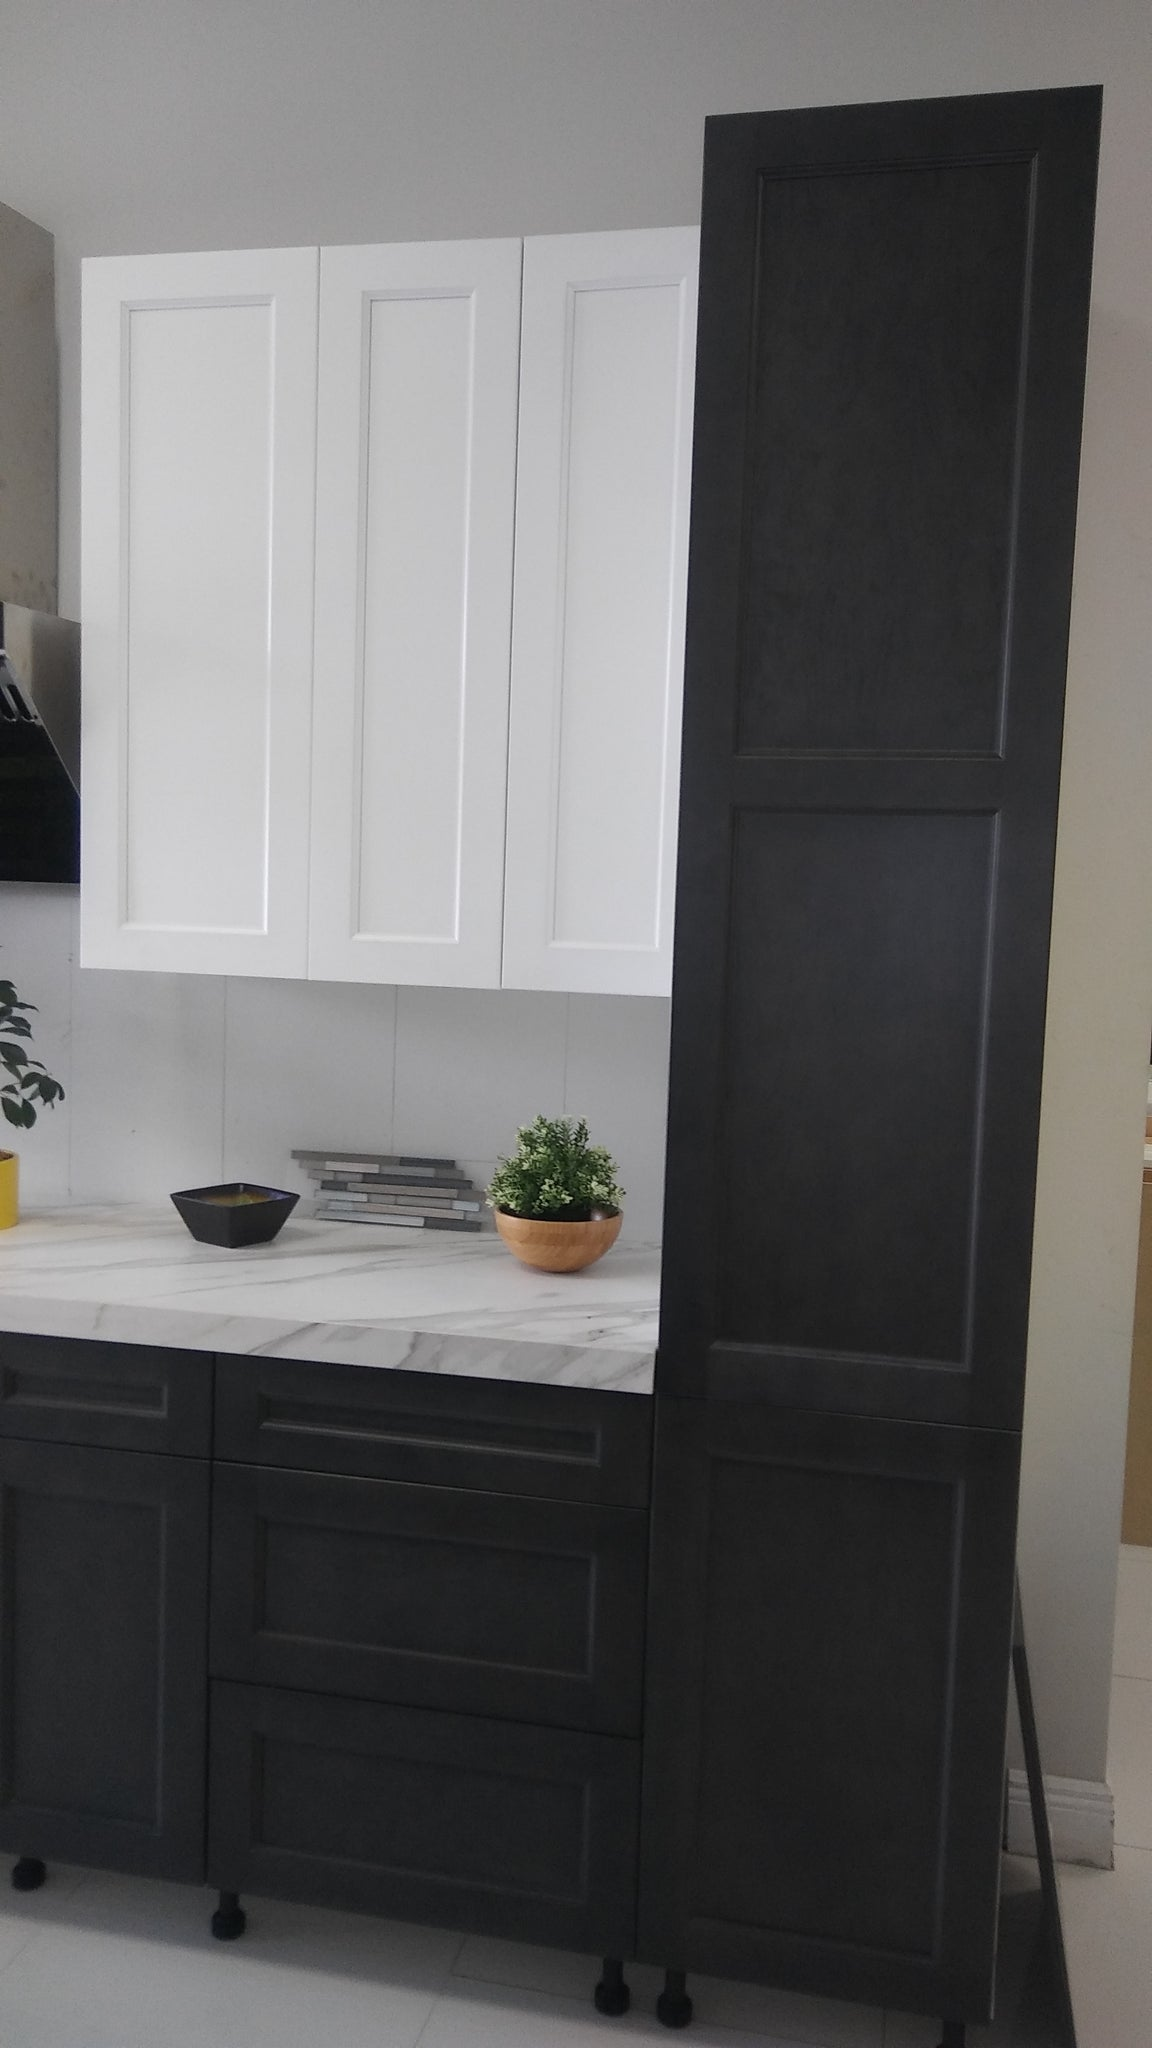 frameless shaker style dove white and dusk gray cabinets cabinet sales center